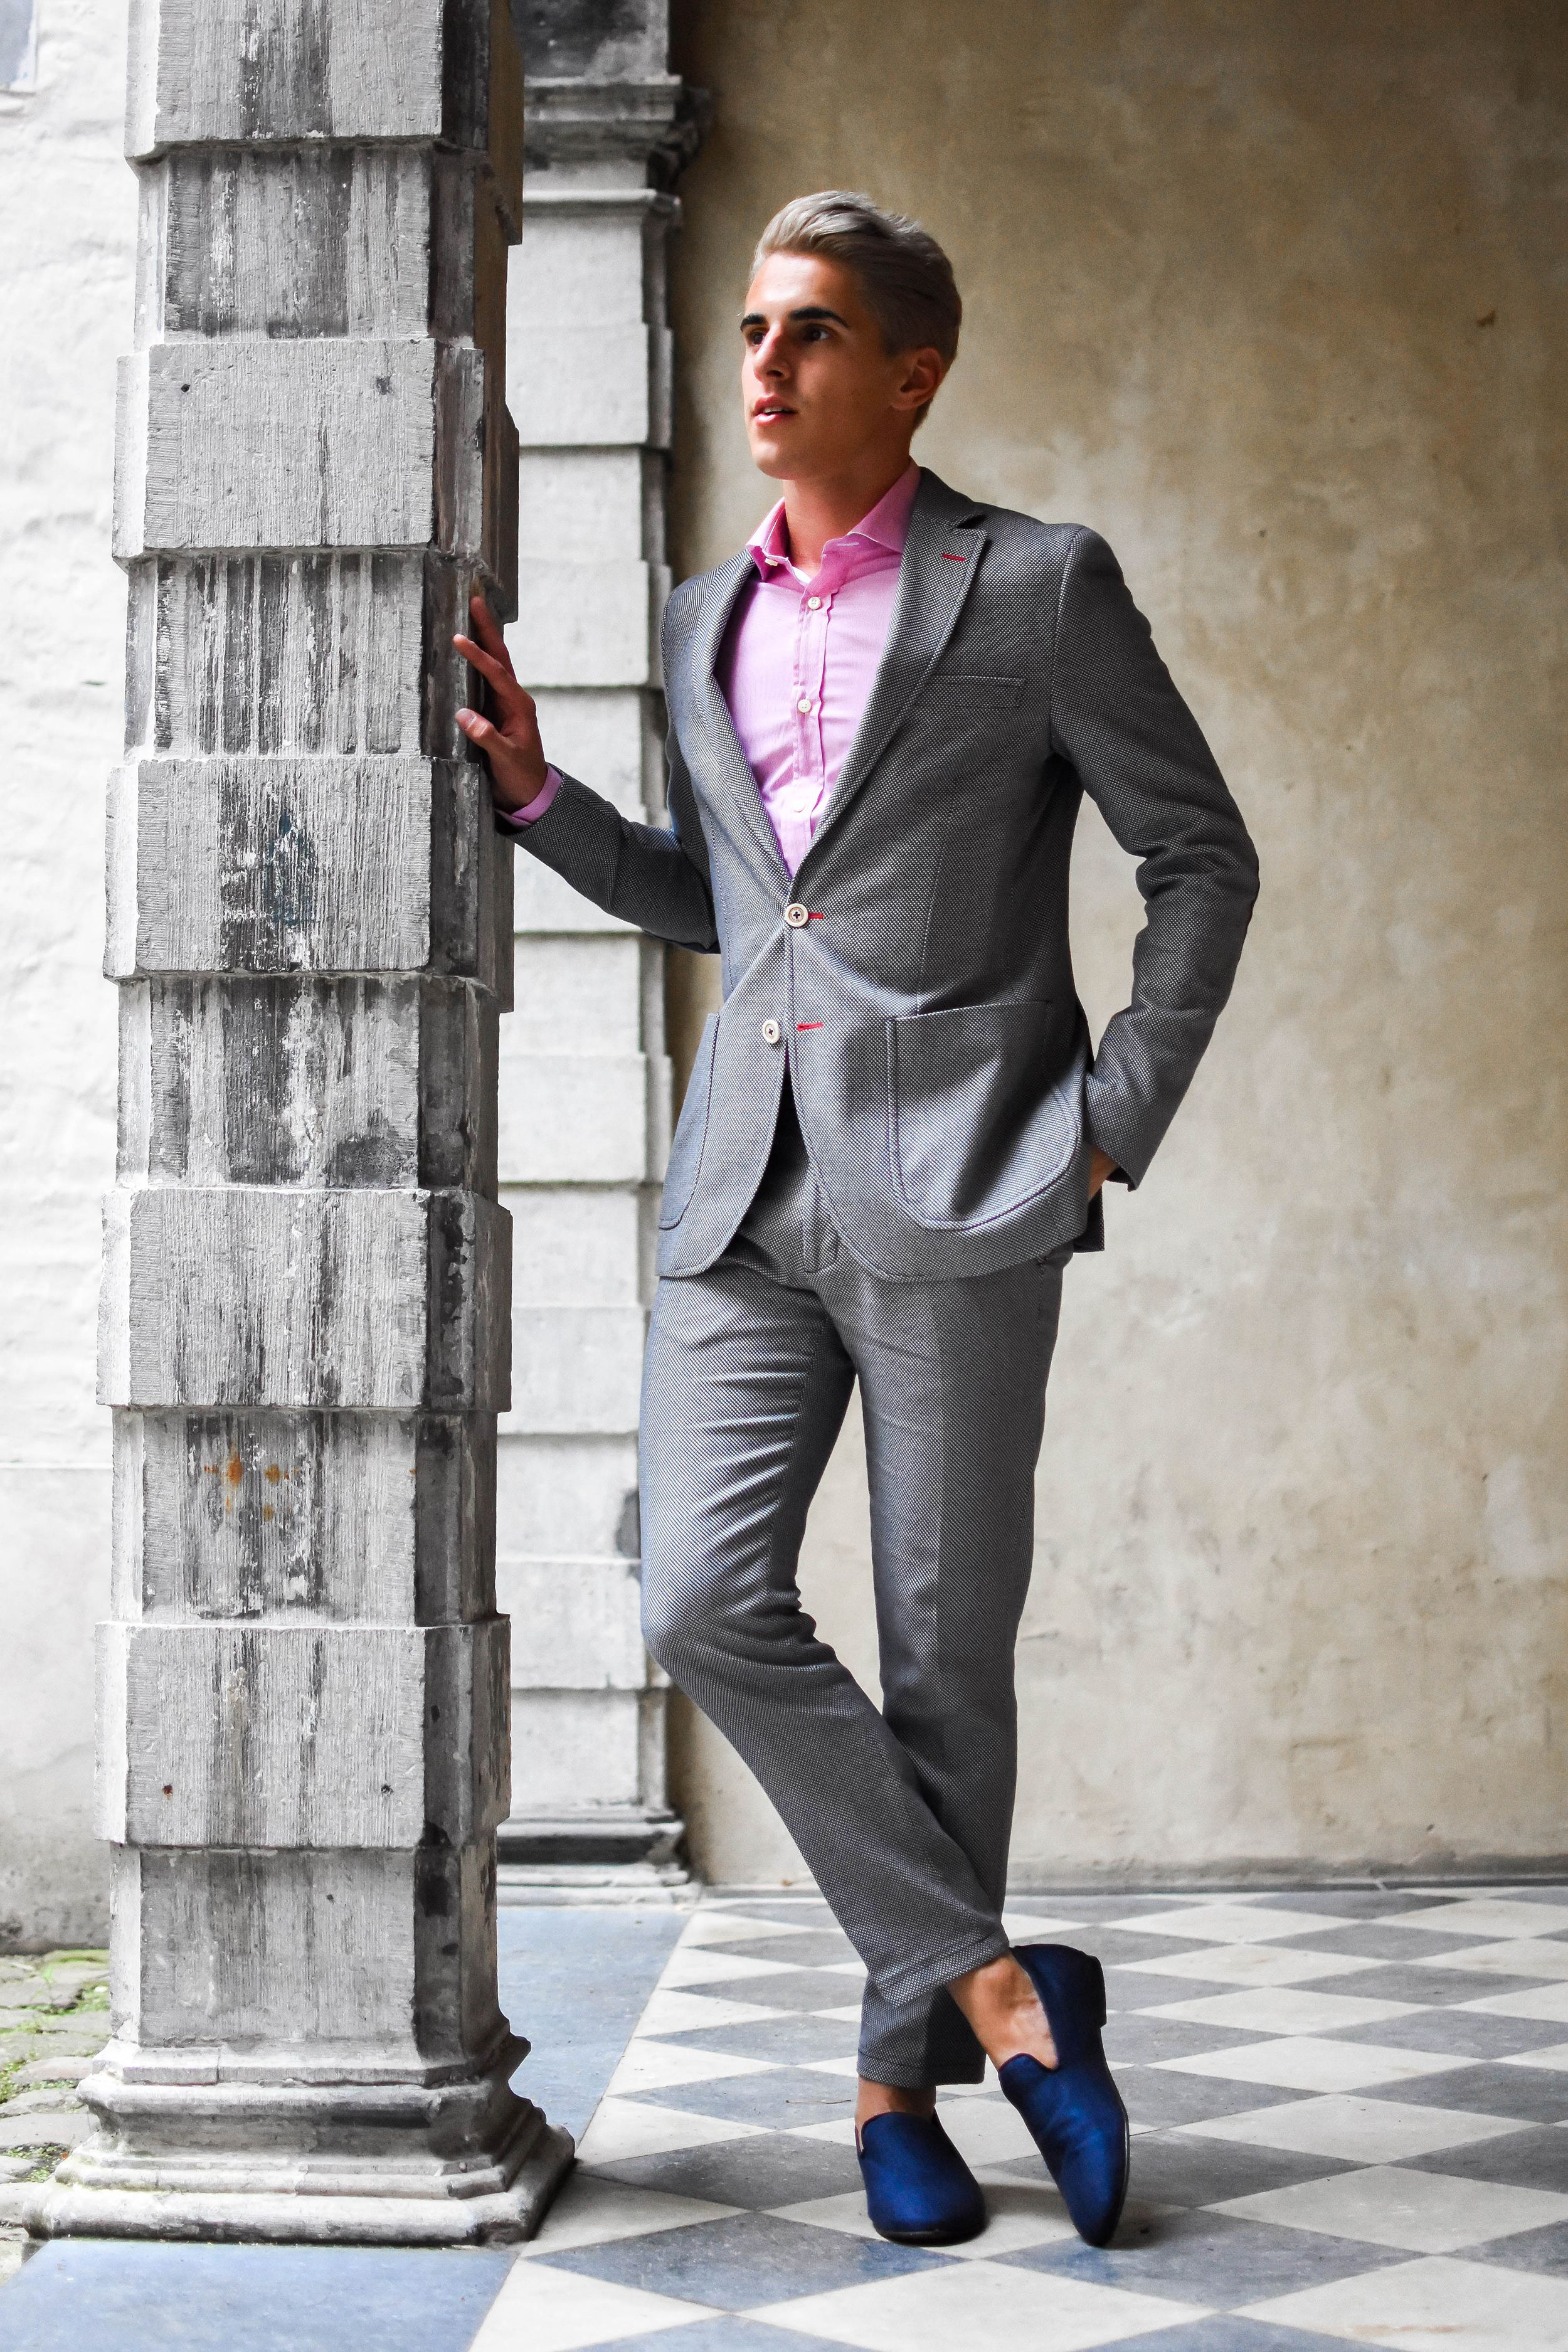 Spain in Antwerp Checkered suit, Gray suit, Pink dress shirt